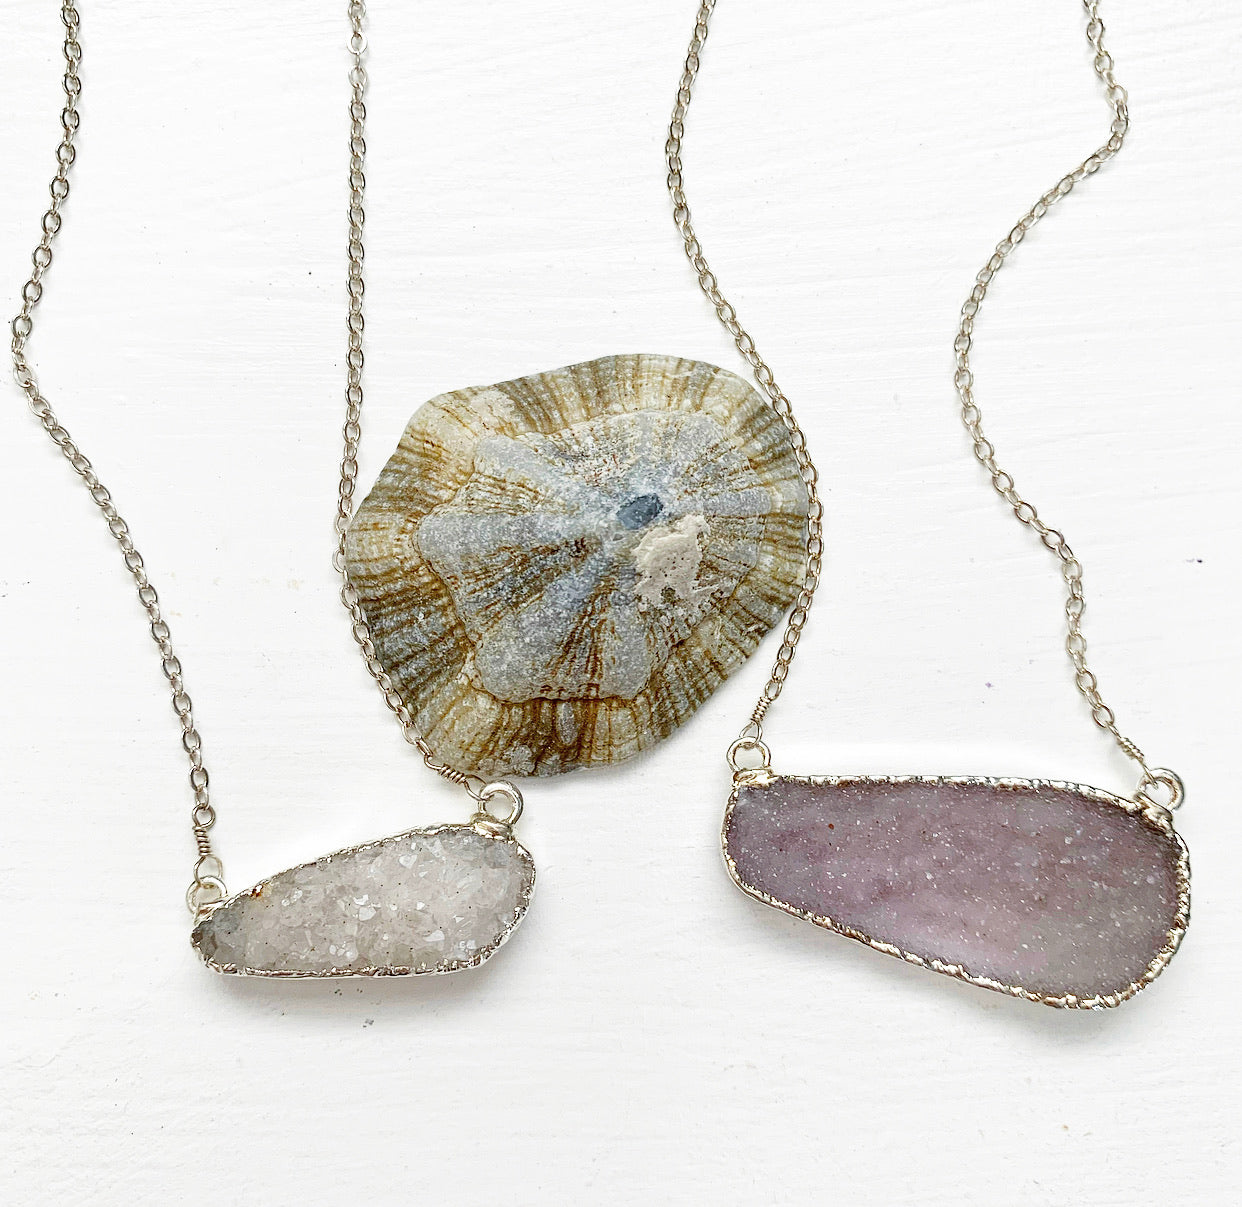 847-Druzy Necklace